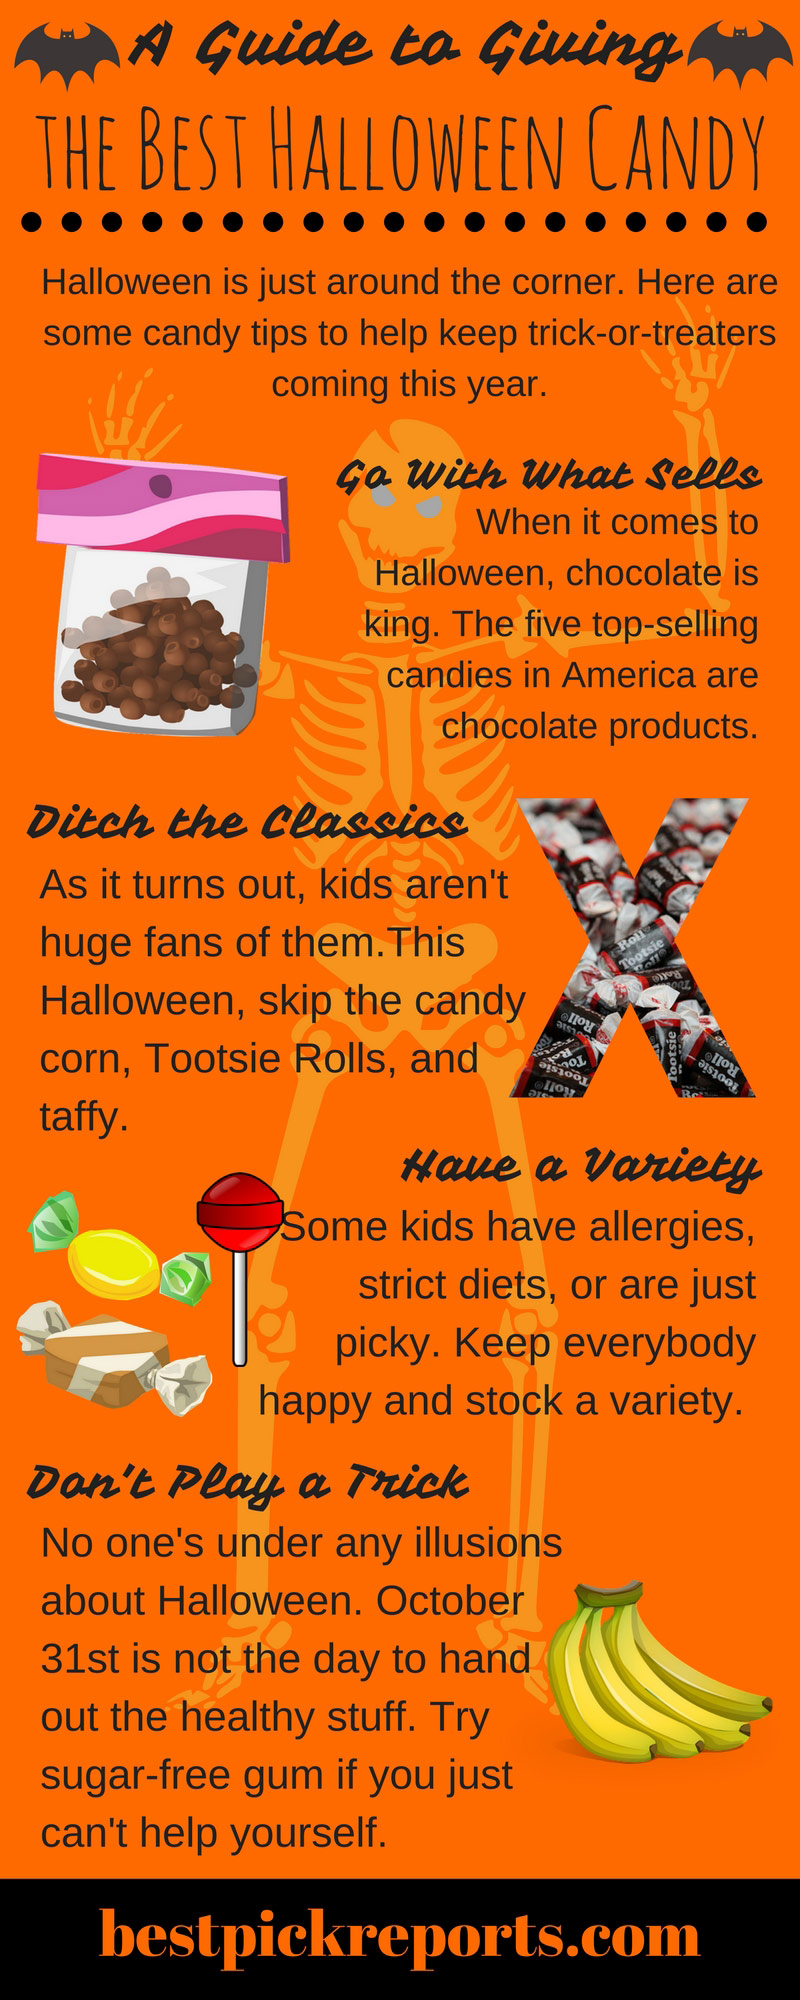 An infographic guide to giving out the best Halloween candy